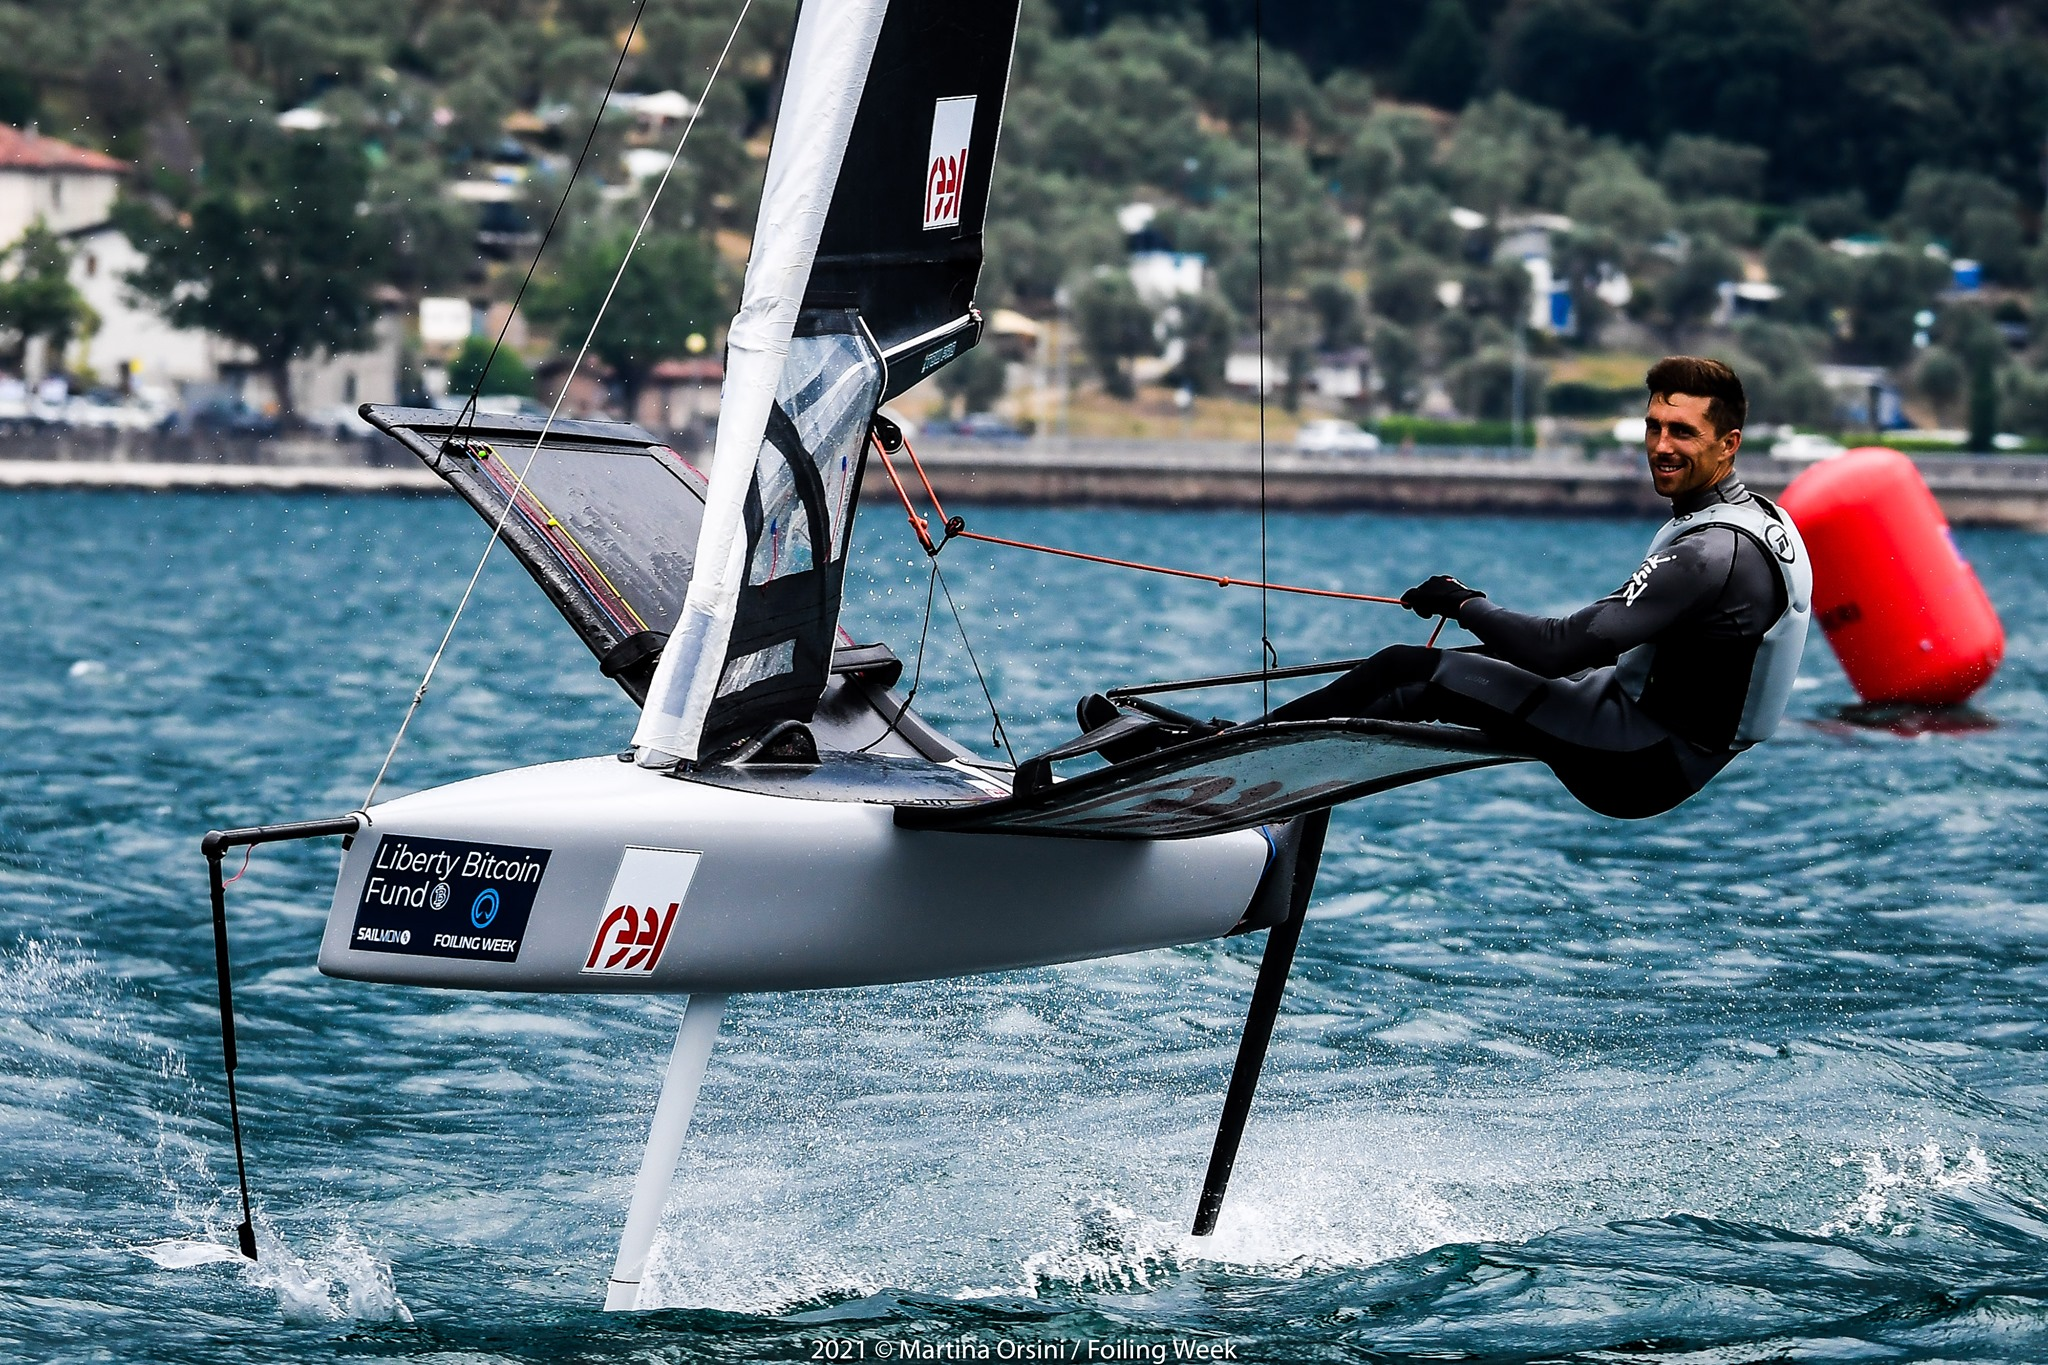 Smiling at the camera while foiling